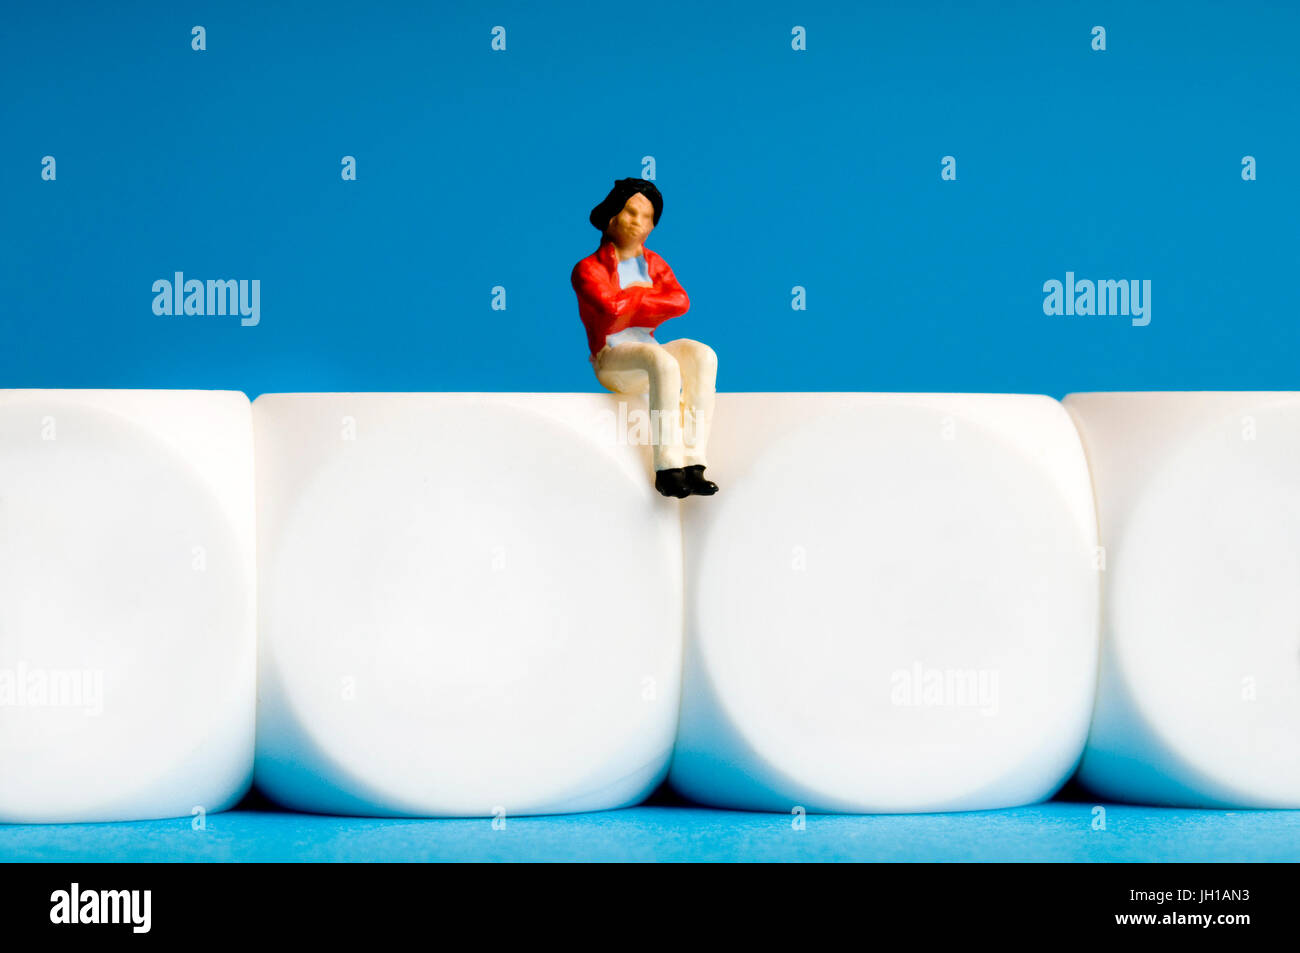 female miniature figurine sitting on white cubes, solitude, psychology and meditation concepts - Stock Image